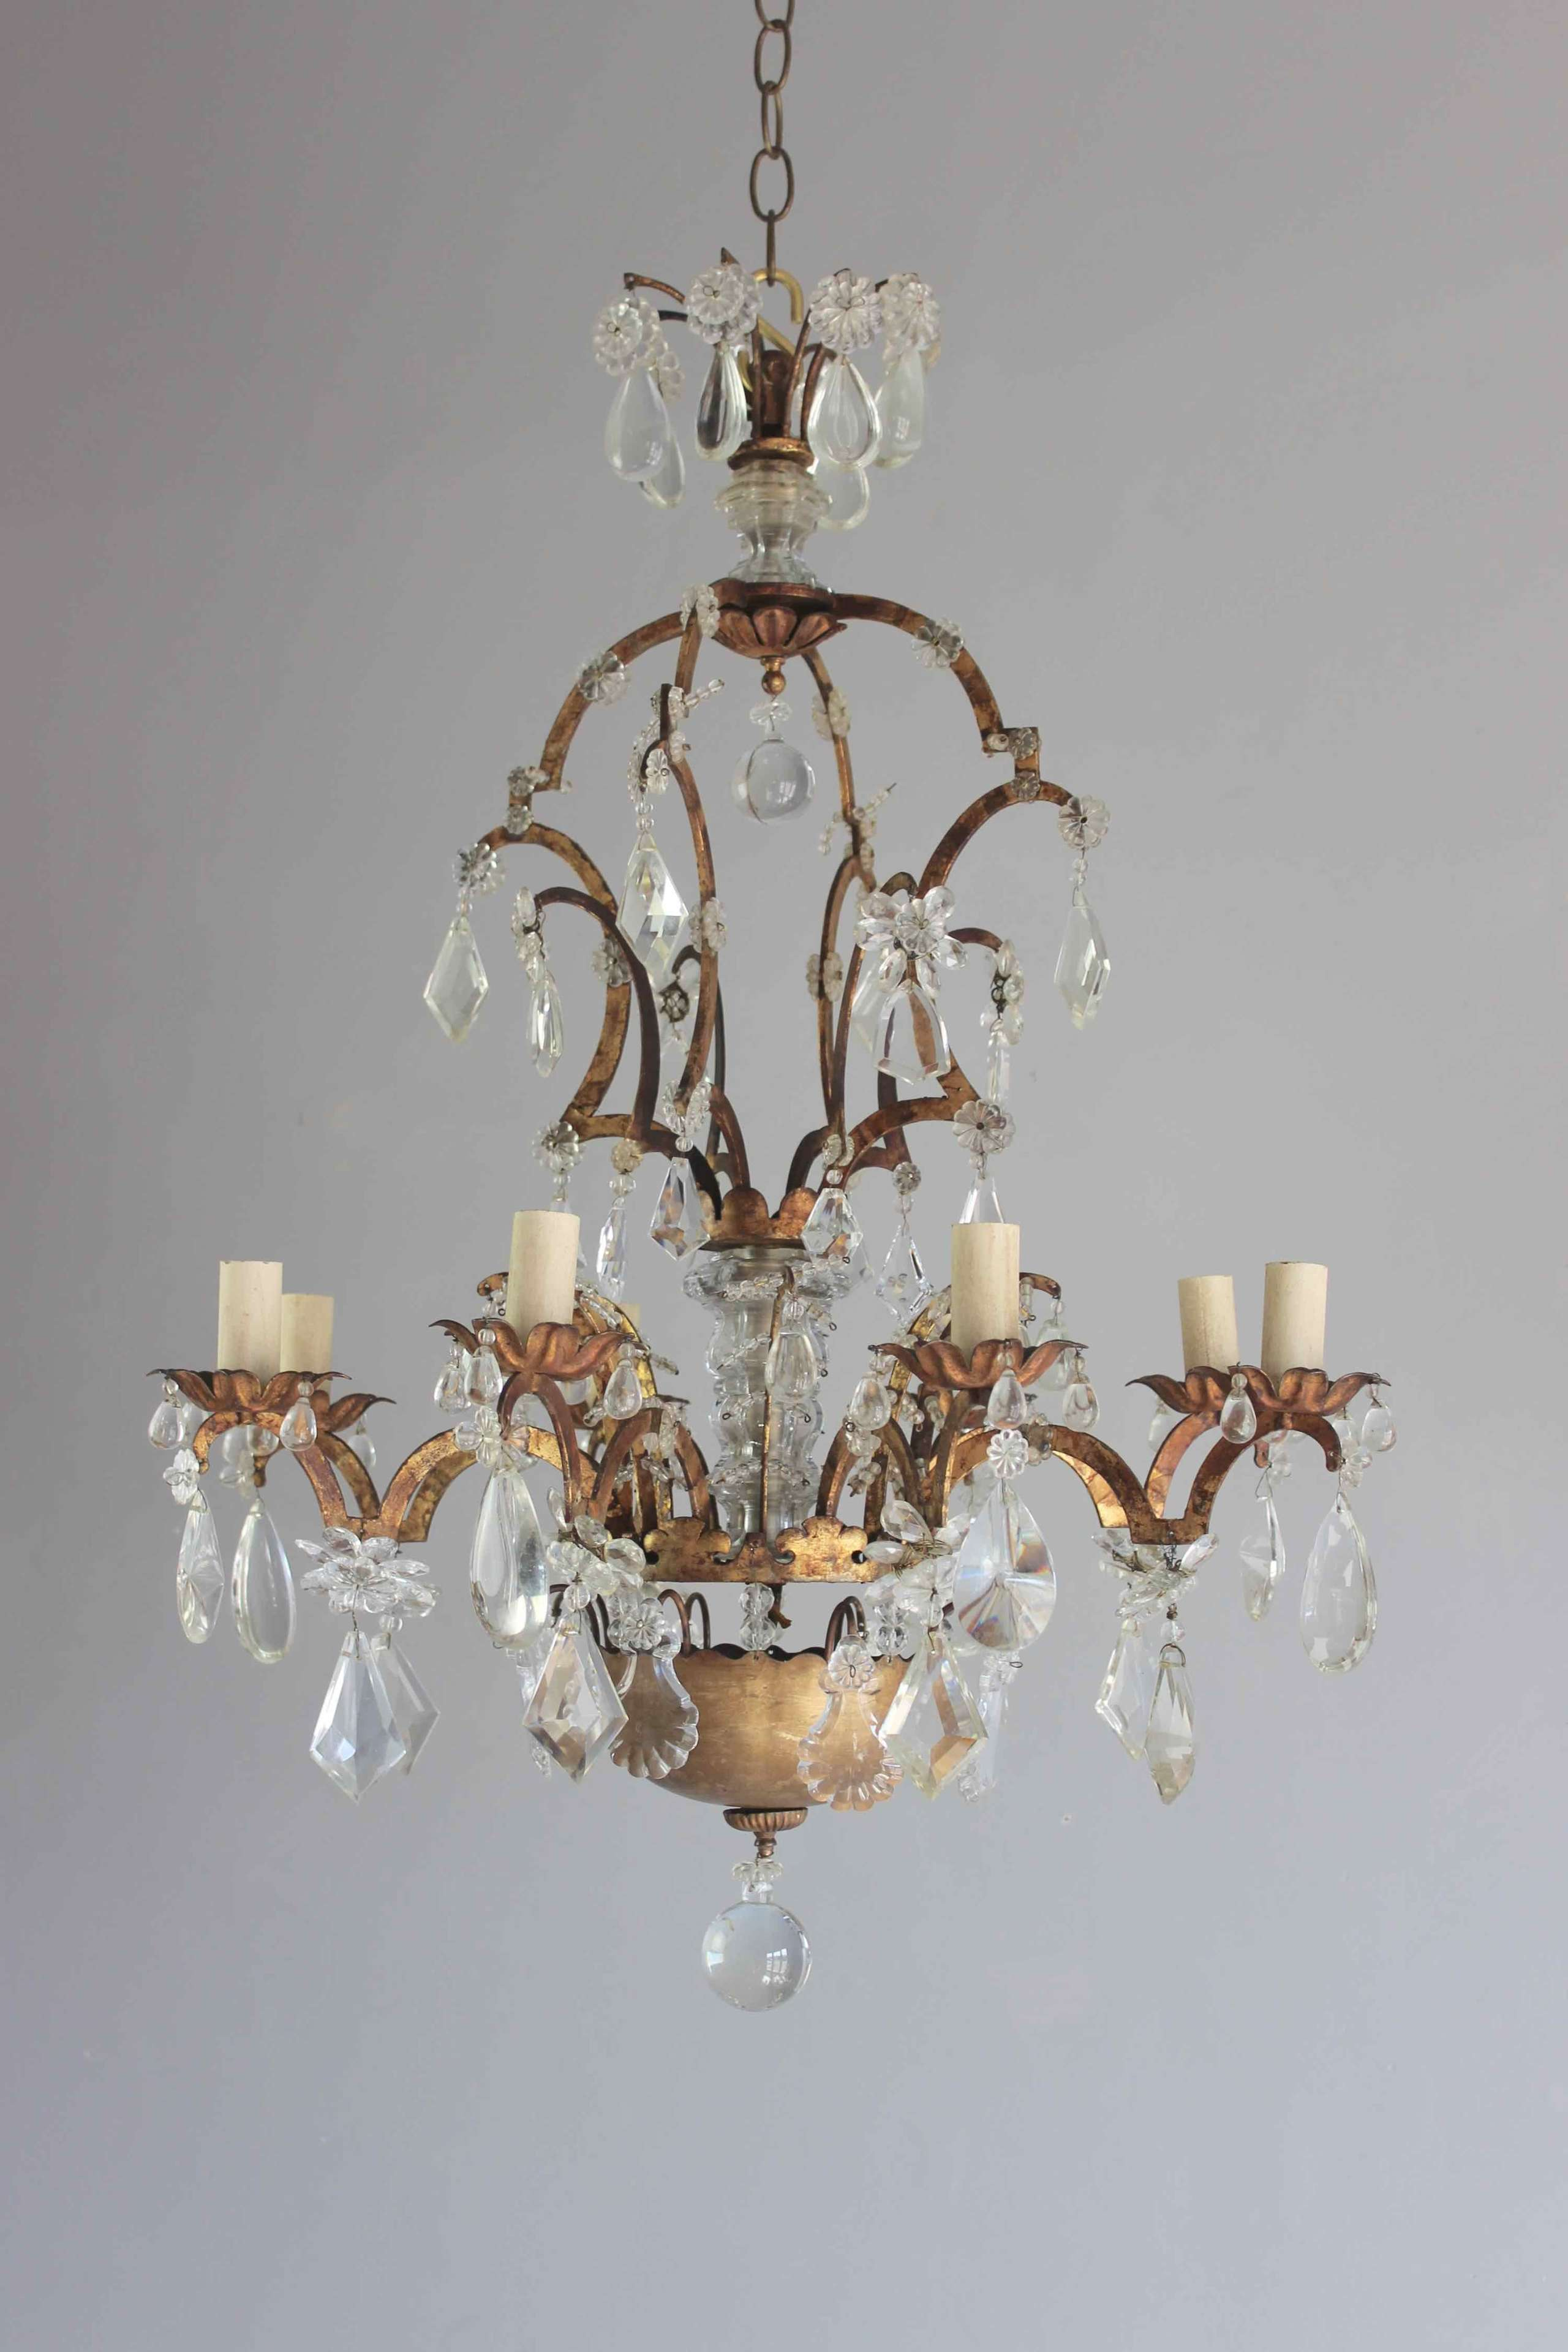 French Bagues style antique chandelier